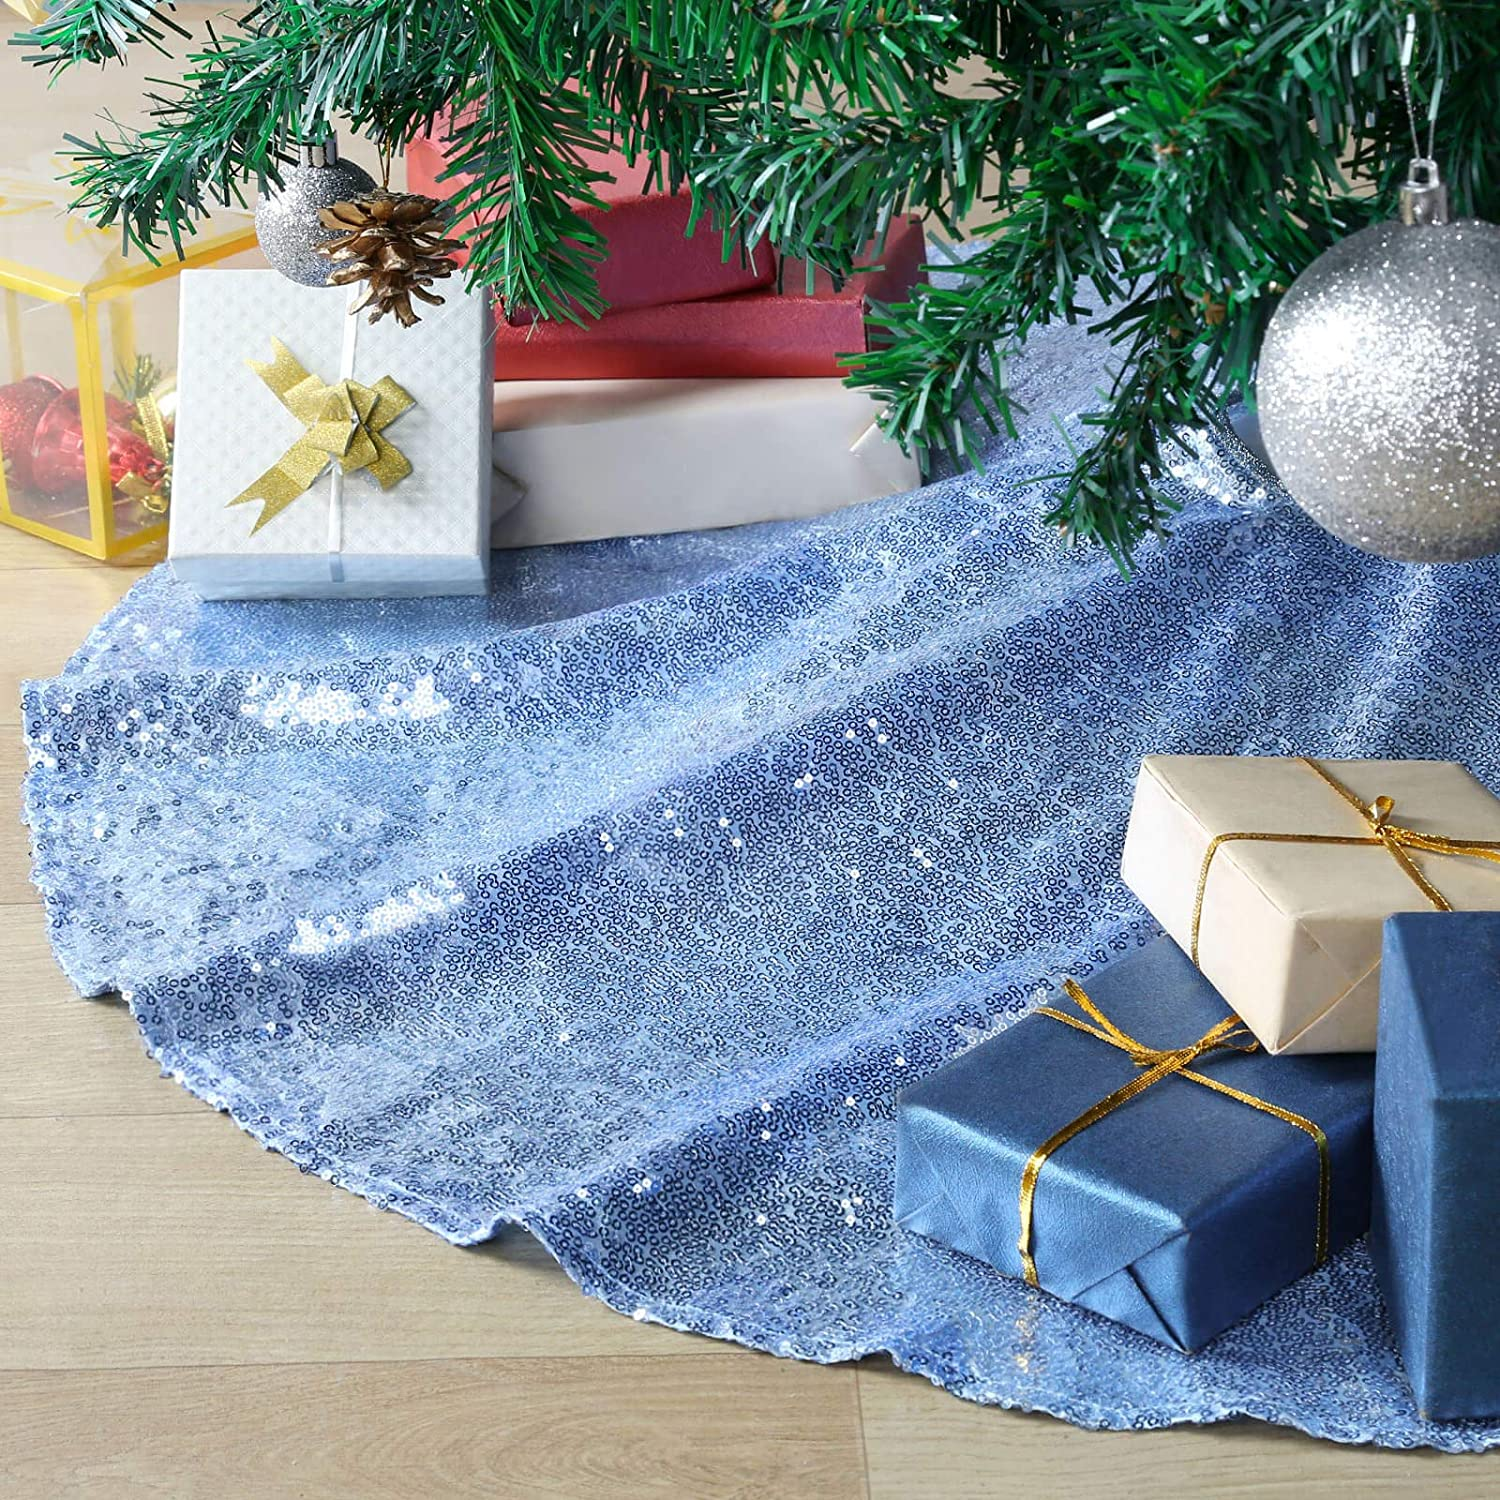 B-COOL Christmas Tree Skirt Glitter Xmas Tree Decor Sequin Tree Cover Layers Home Farmhouse Personalized Baby Blue 36Inch